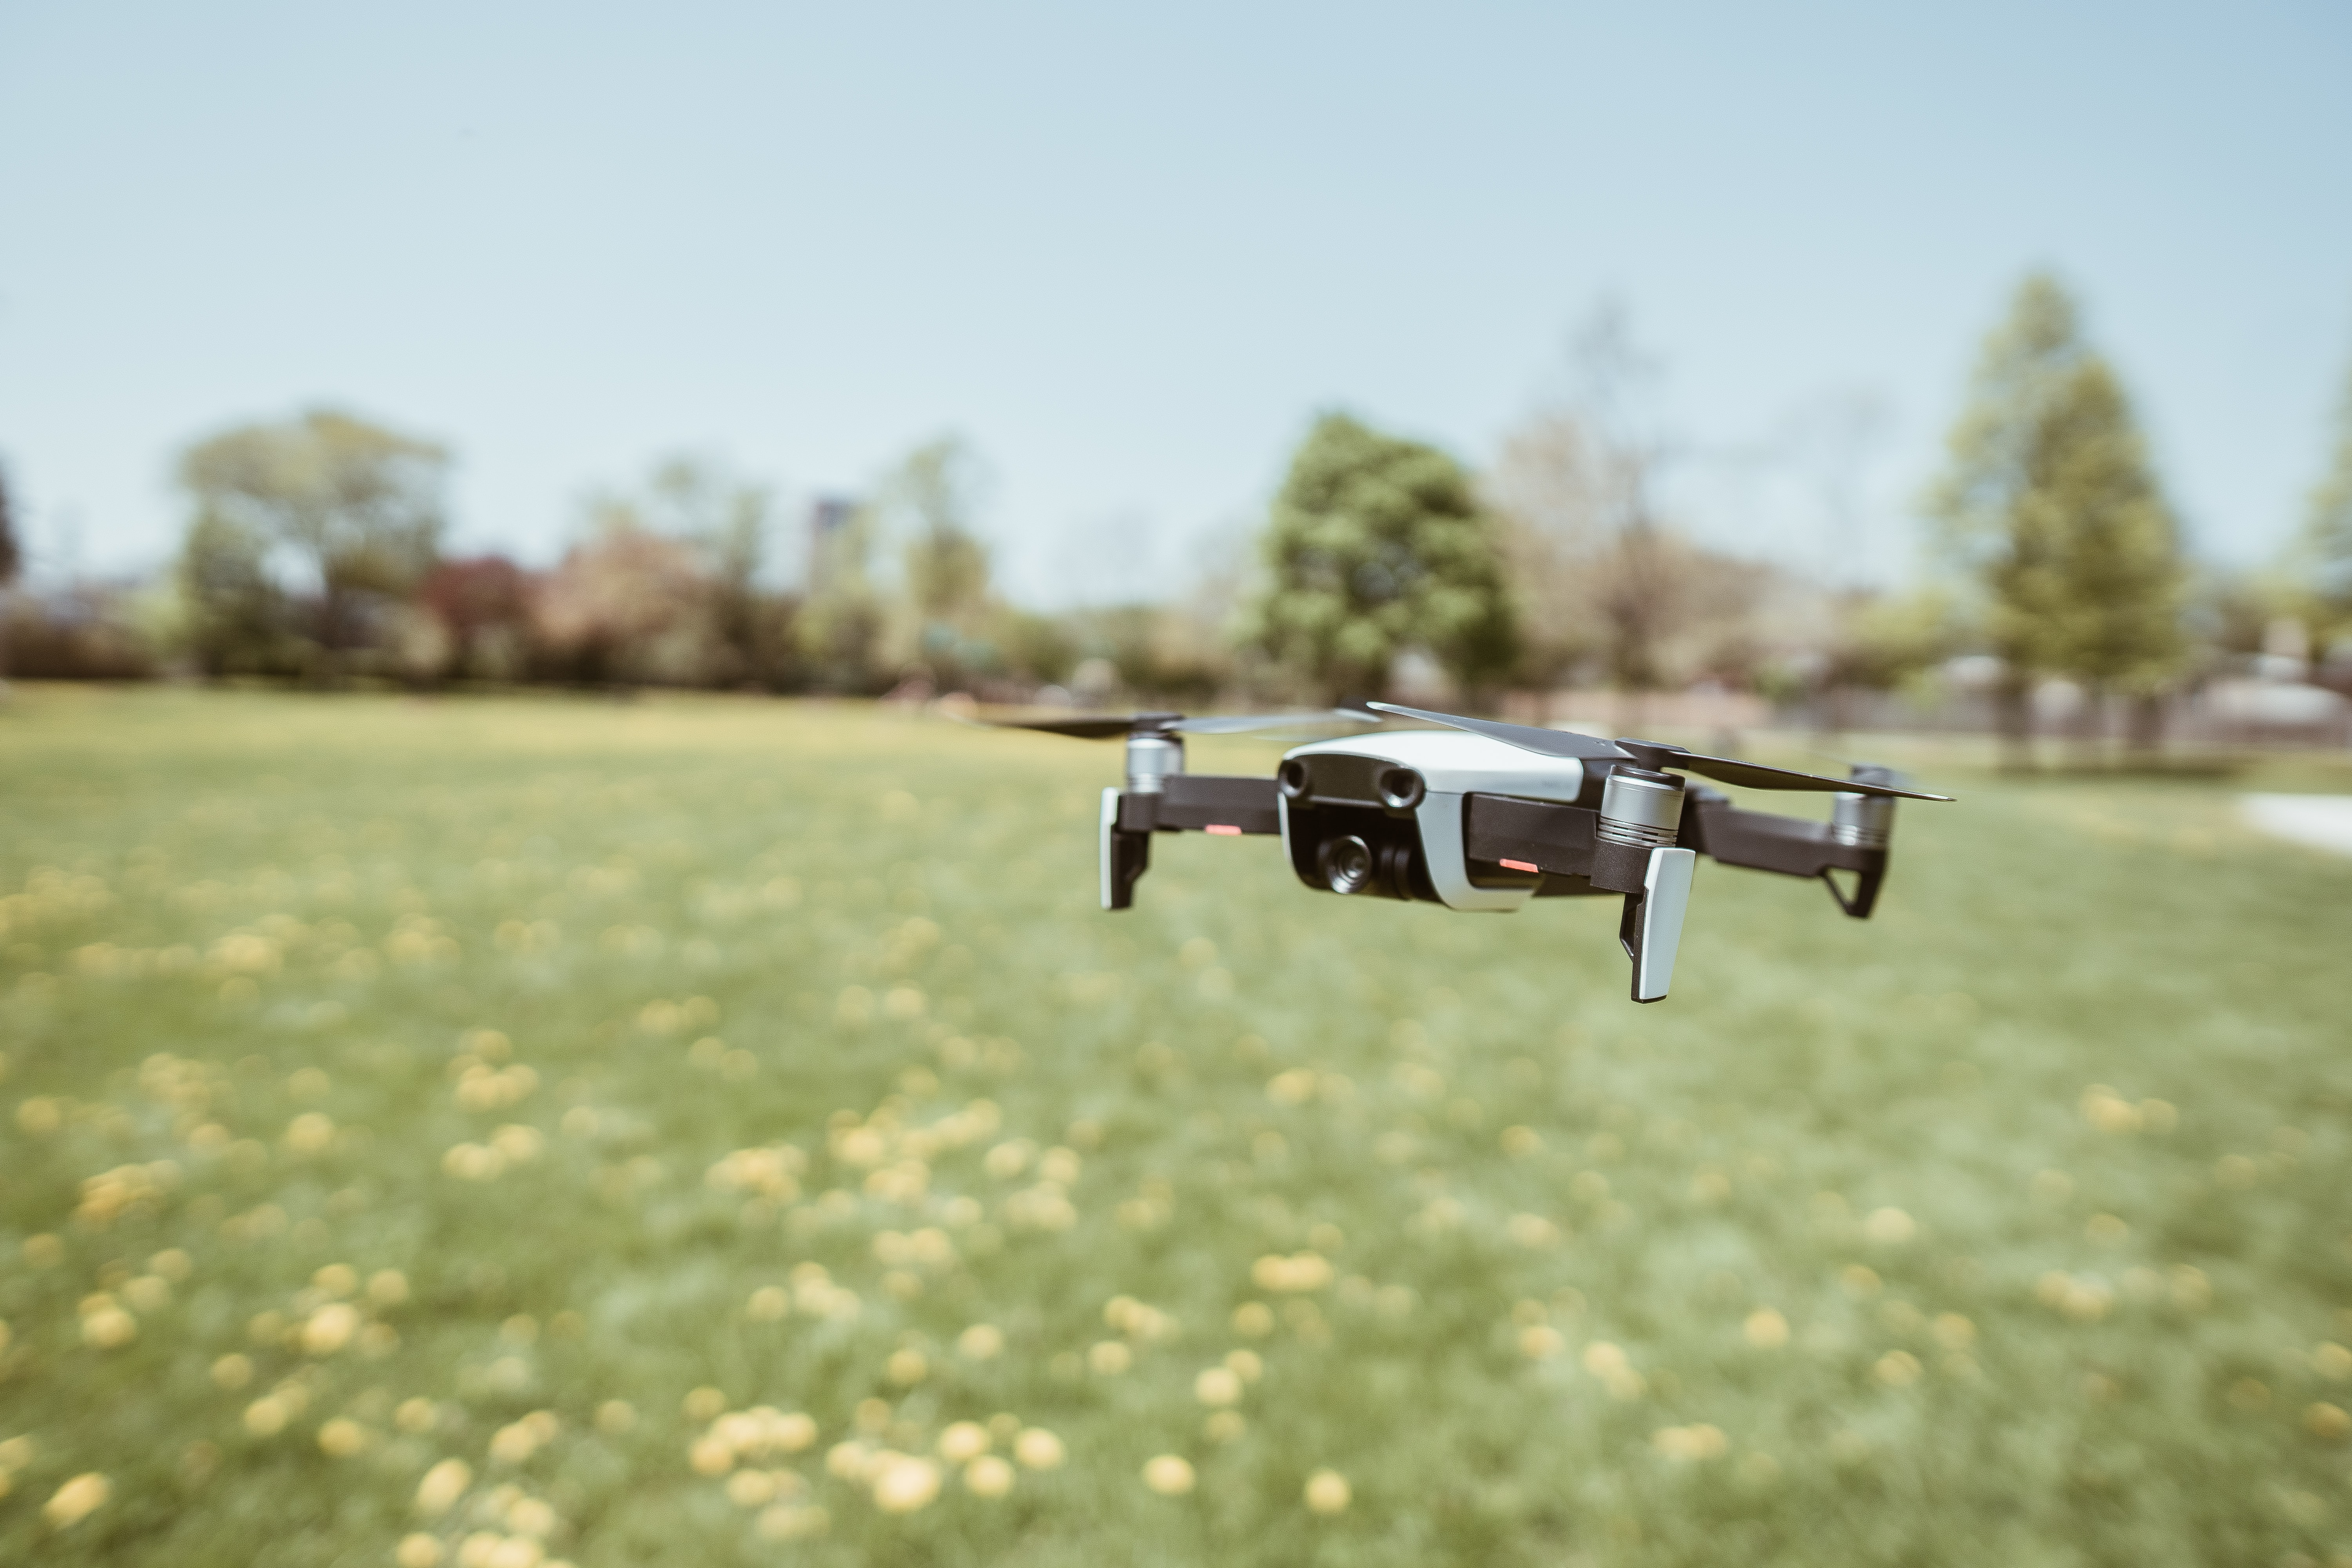 flying white and black drone